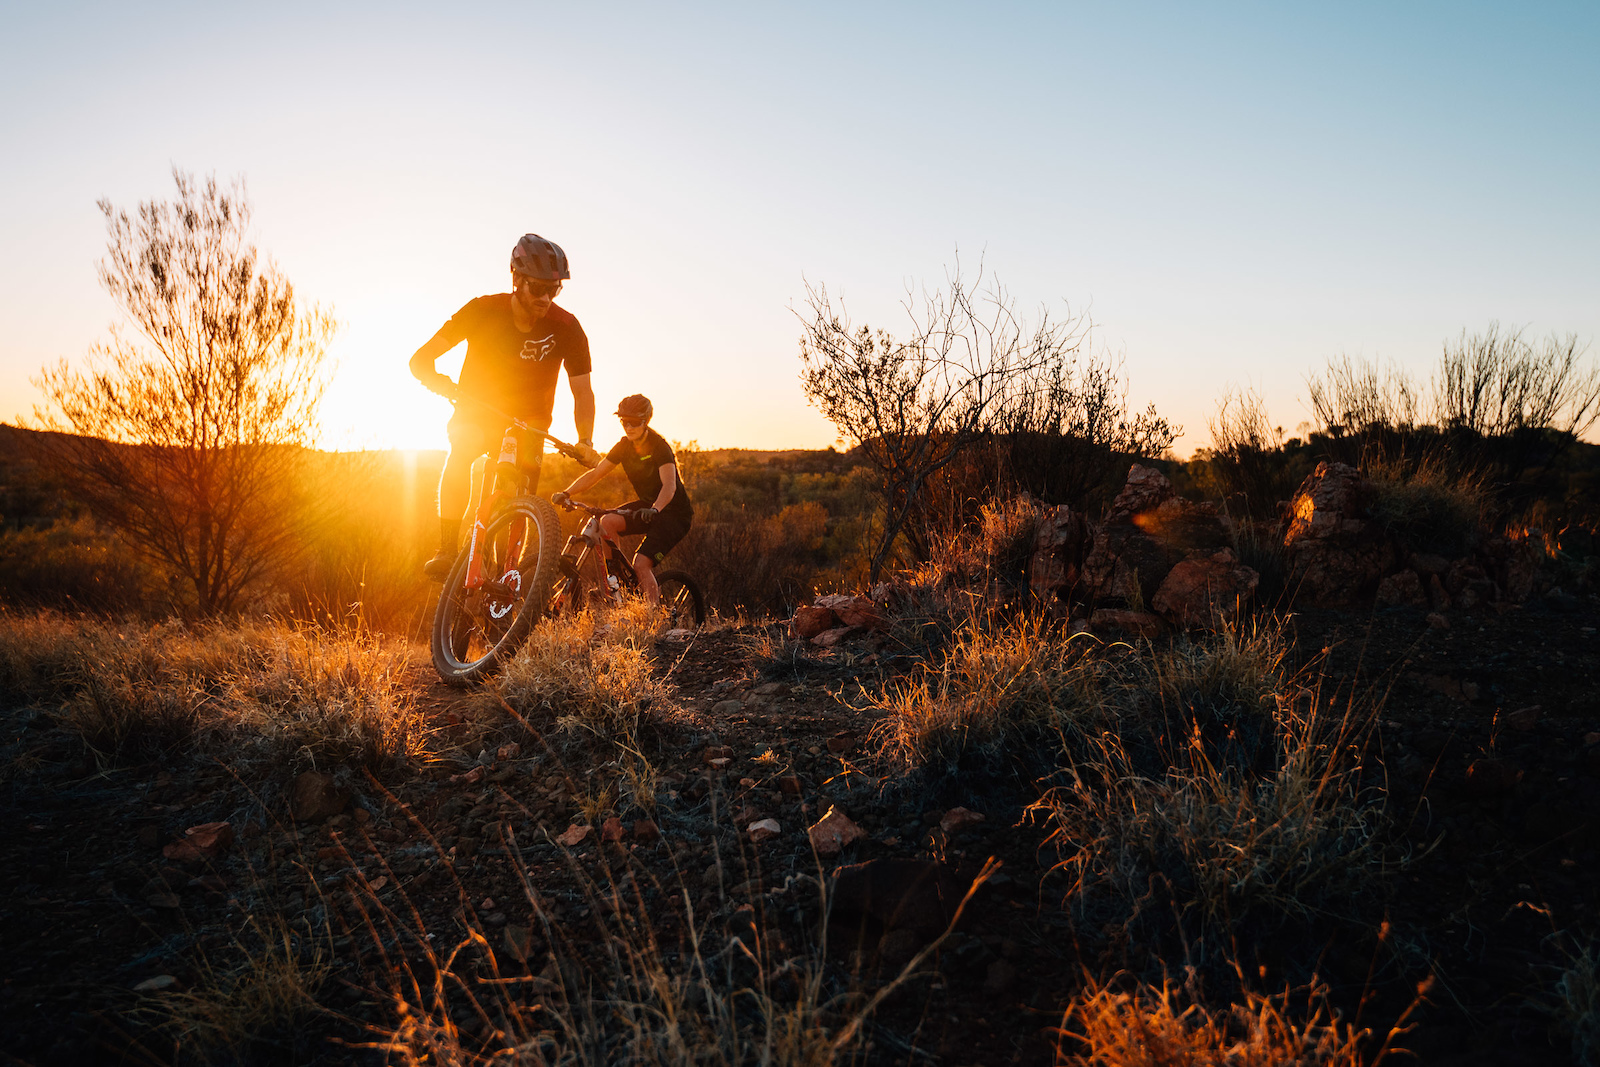 Starting off the day with a sunrise spin seemed popular around Alice Springs we encountered many people out there doing it.